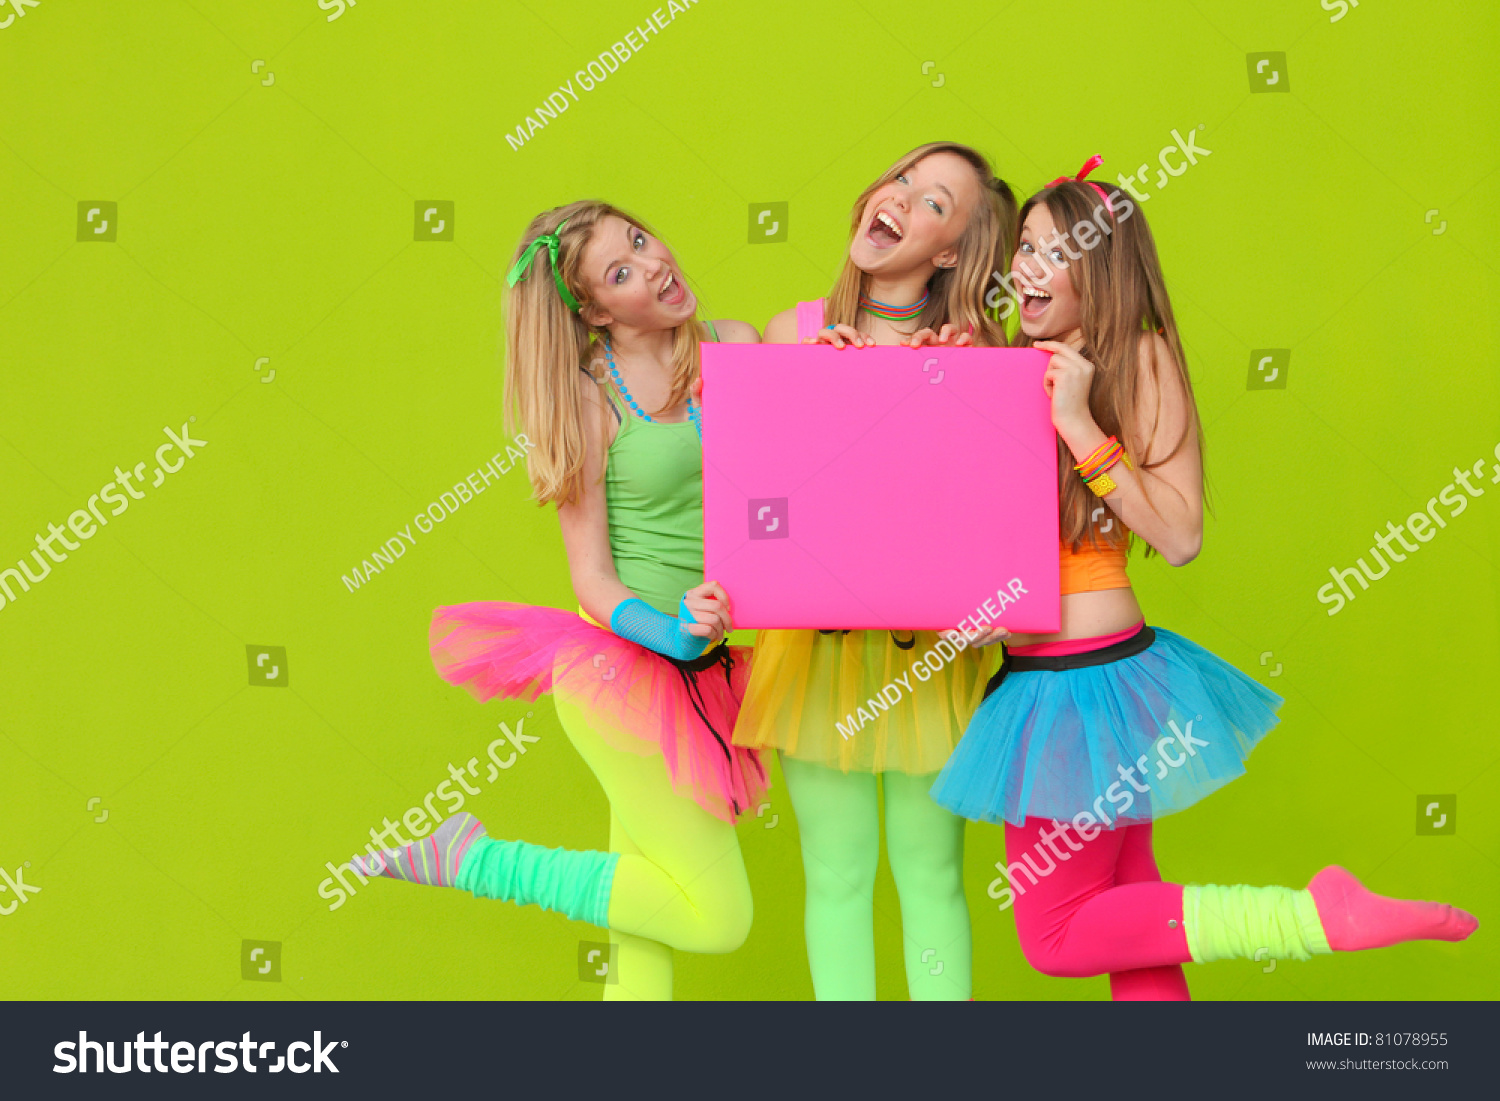 Happy Party Teen Girls Neon Fancy Stock Photo 81078955 - Shutterstock